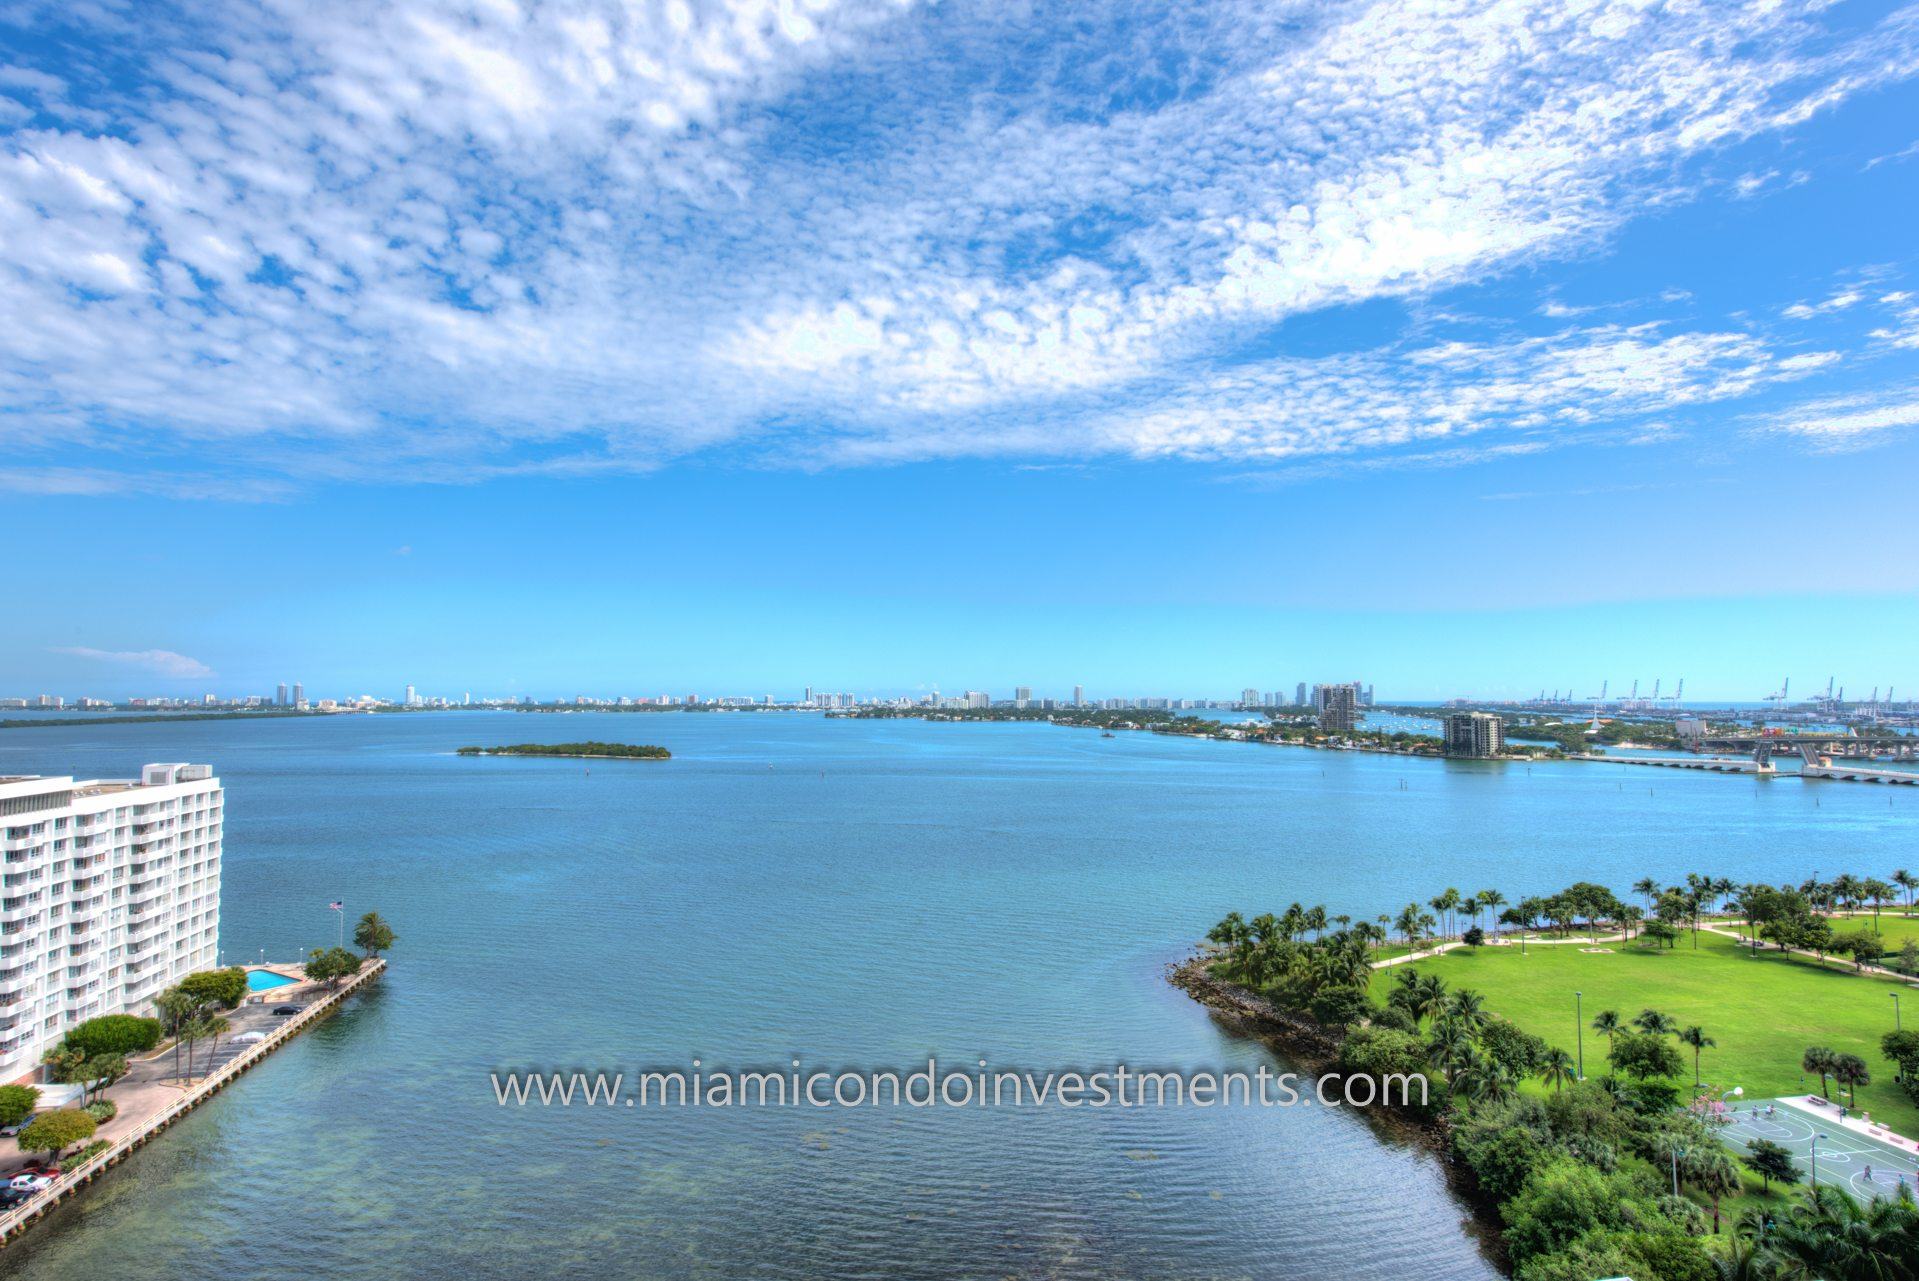 picturesque views from Paramount Bay condo